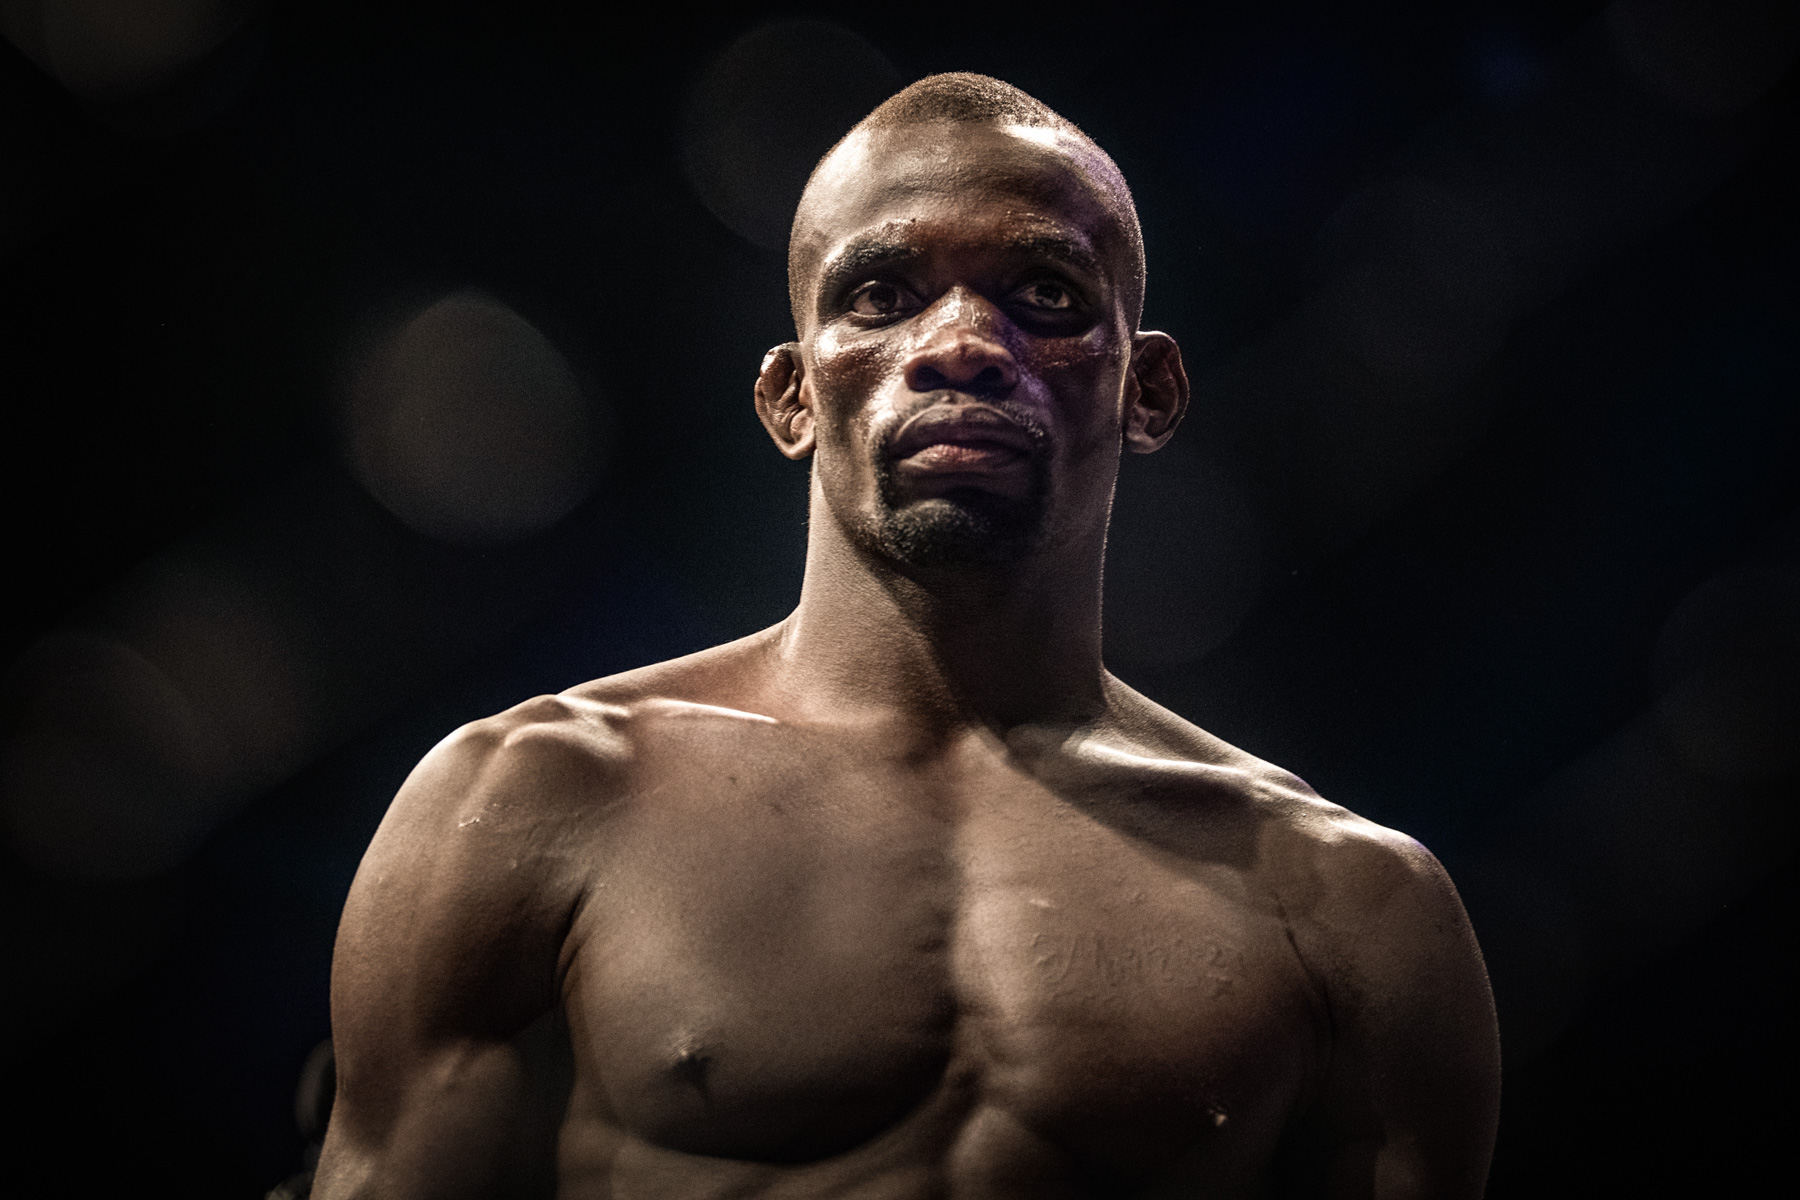 3 May 2019: Themba Gorimbo in the EFC 79: Fight Night welterweight bout against Jose Da Rocha at Carnival City in Johannesburg. (Photograph by Leticia Cox)